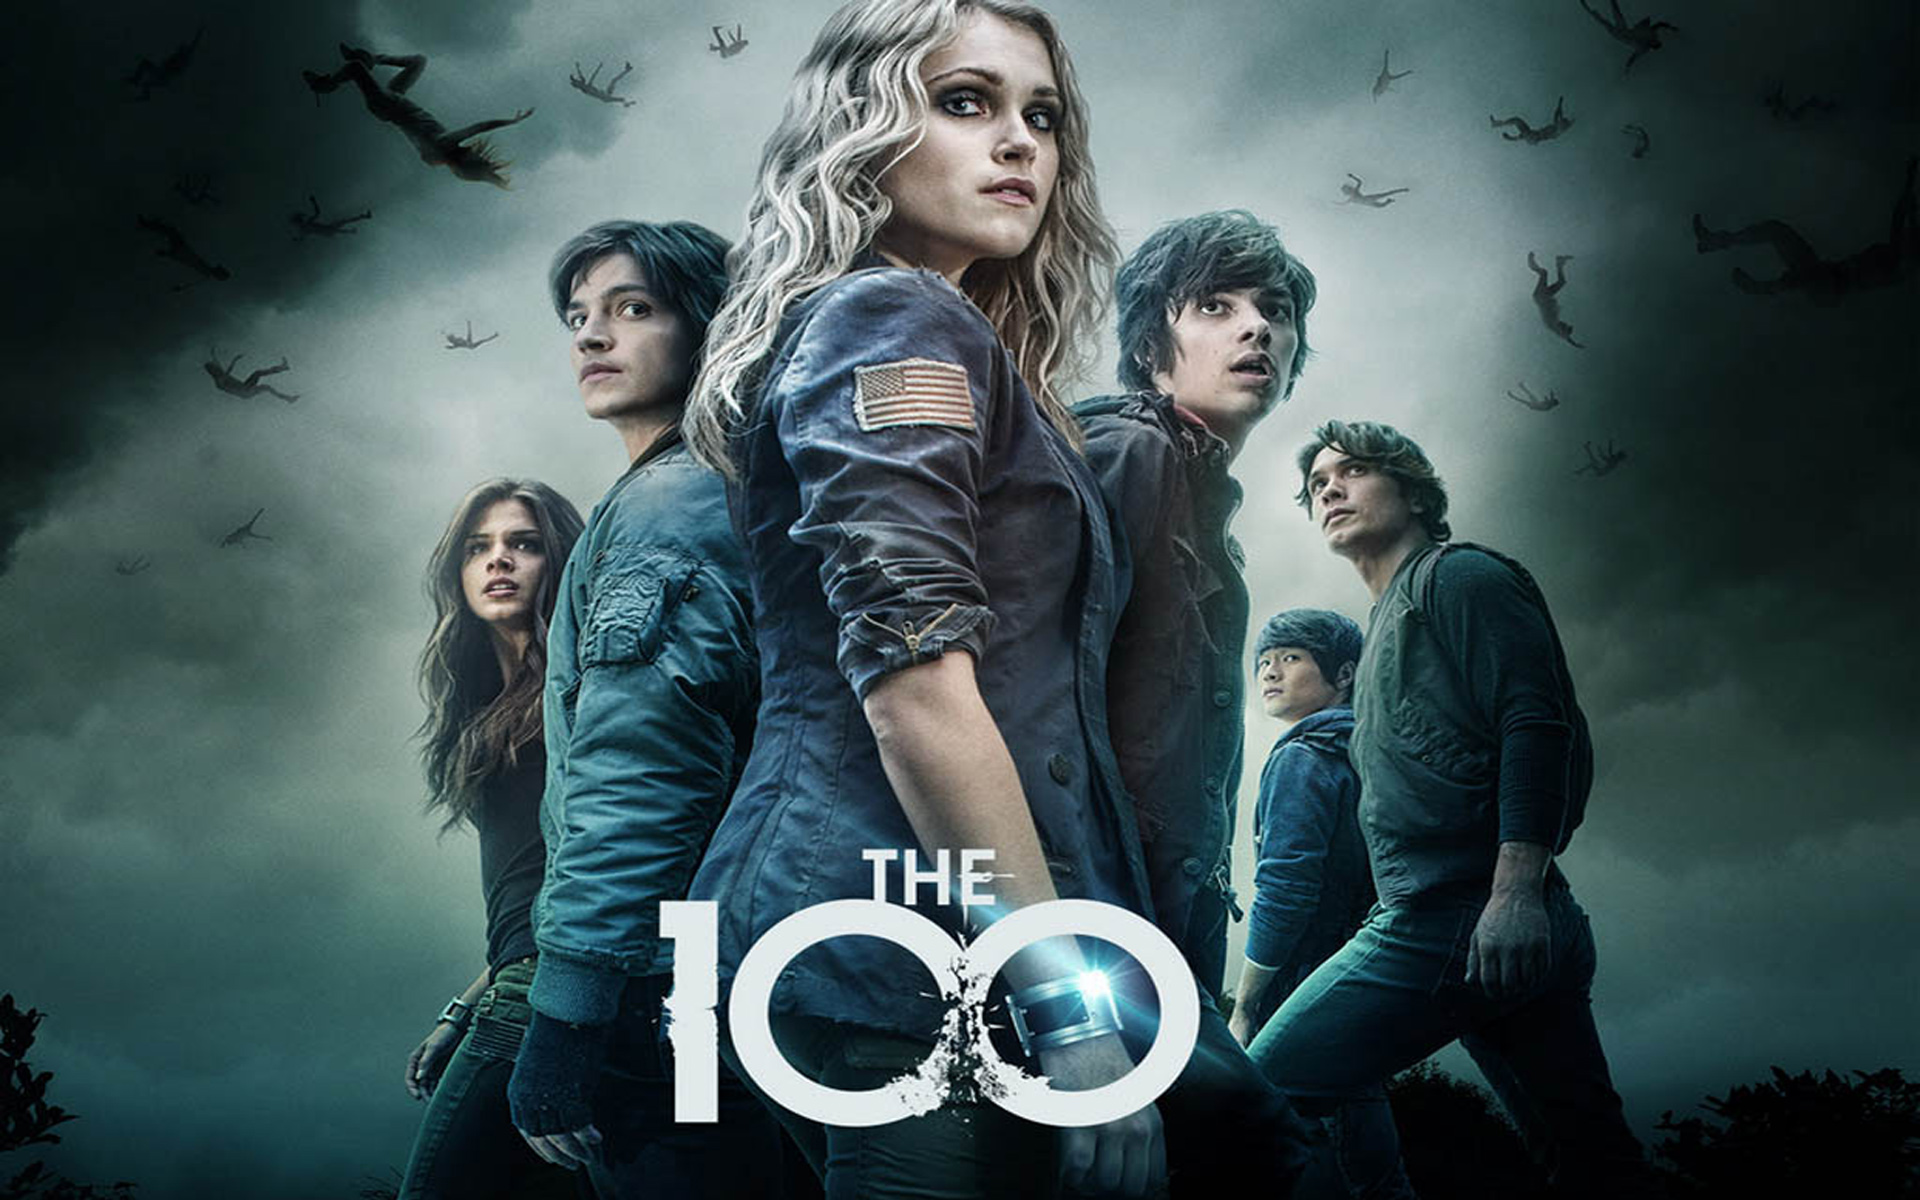 Download The 100 TV Series HD Desktop Wallpapers We provide the best 1920x1200